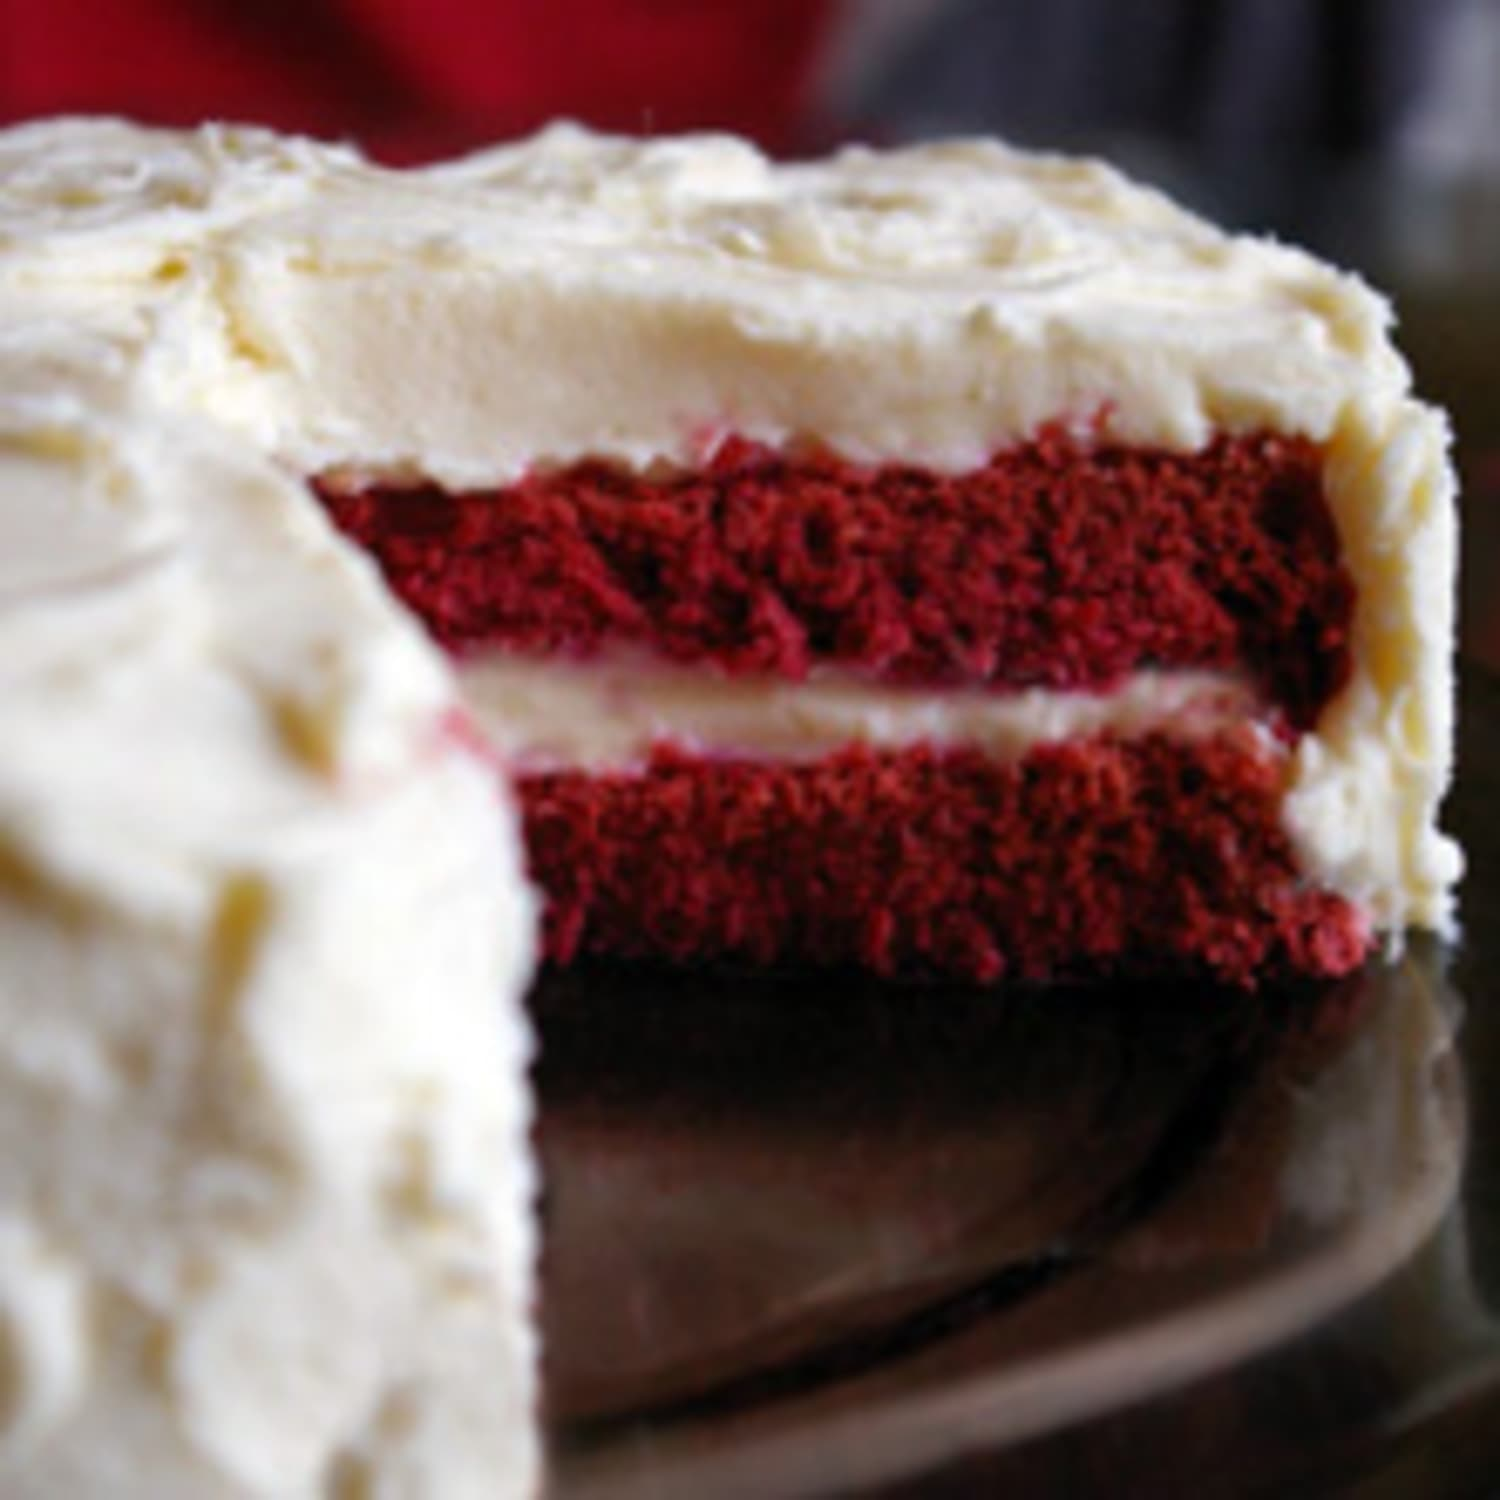 Can I Make Red Velvet Cake With Beets Instead of Dye? | Kitchn